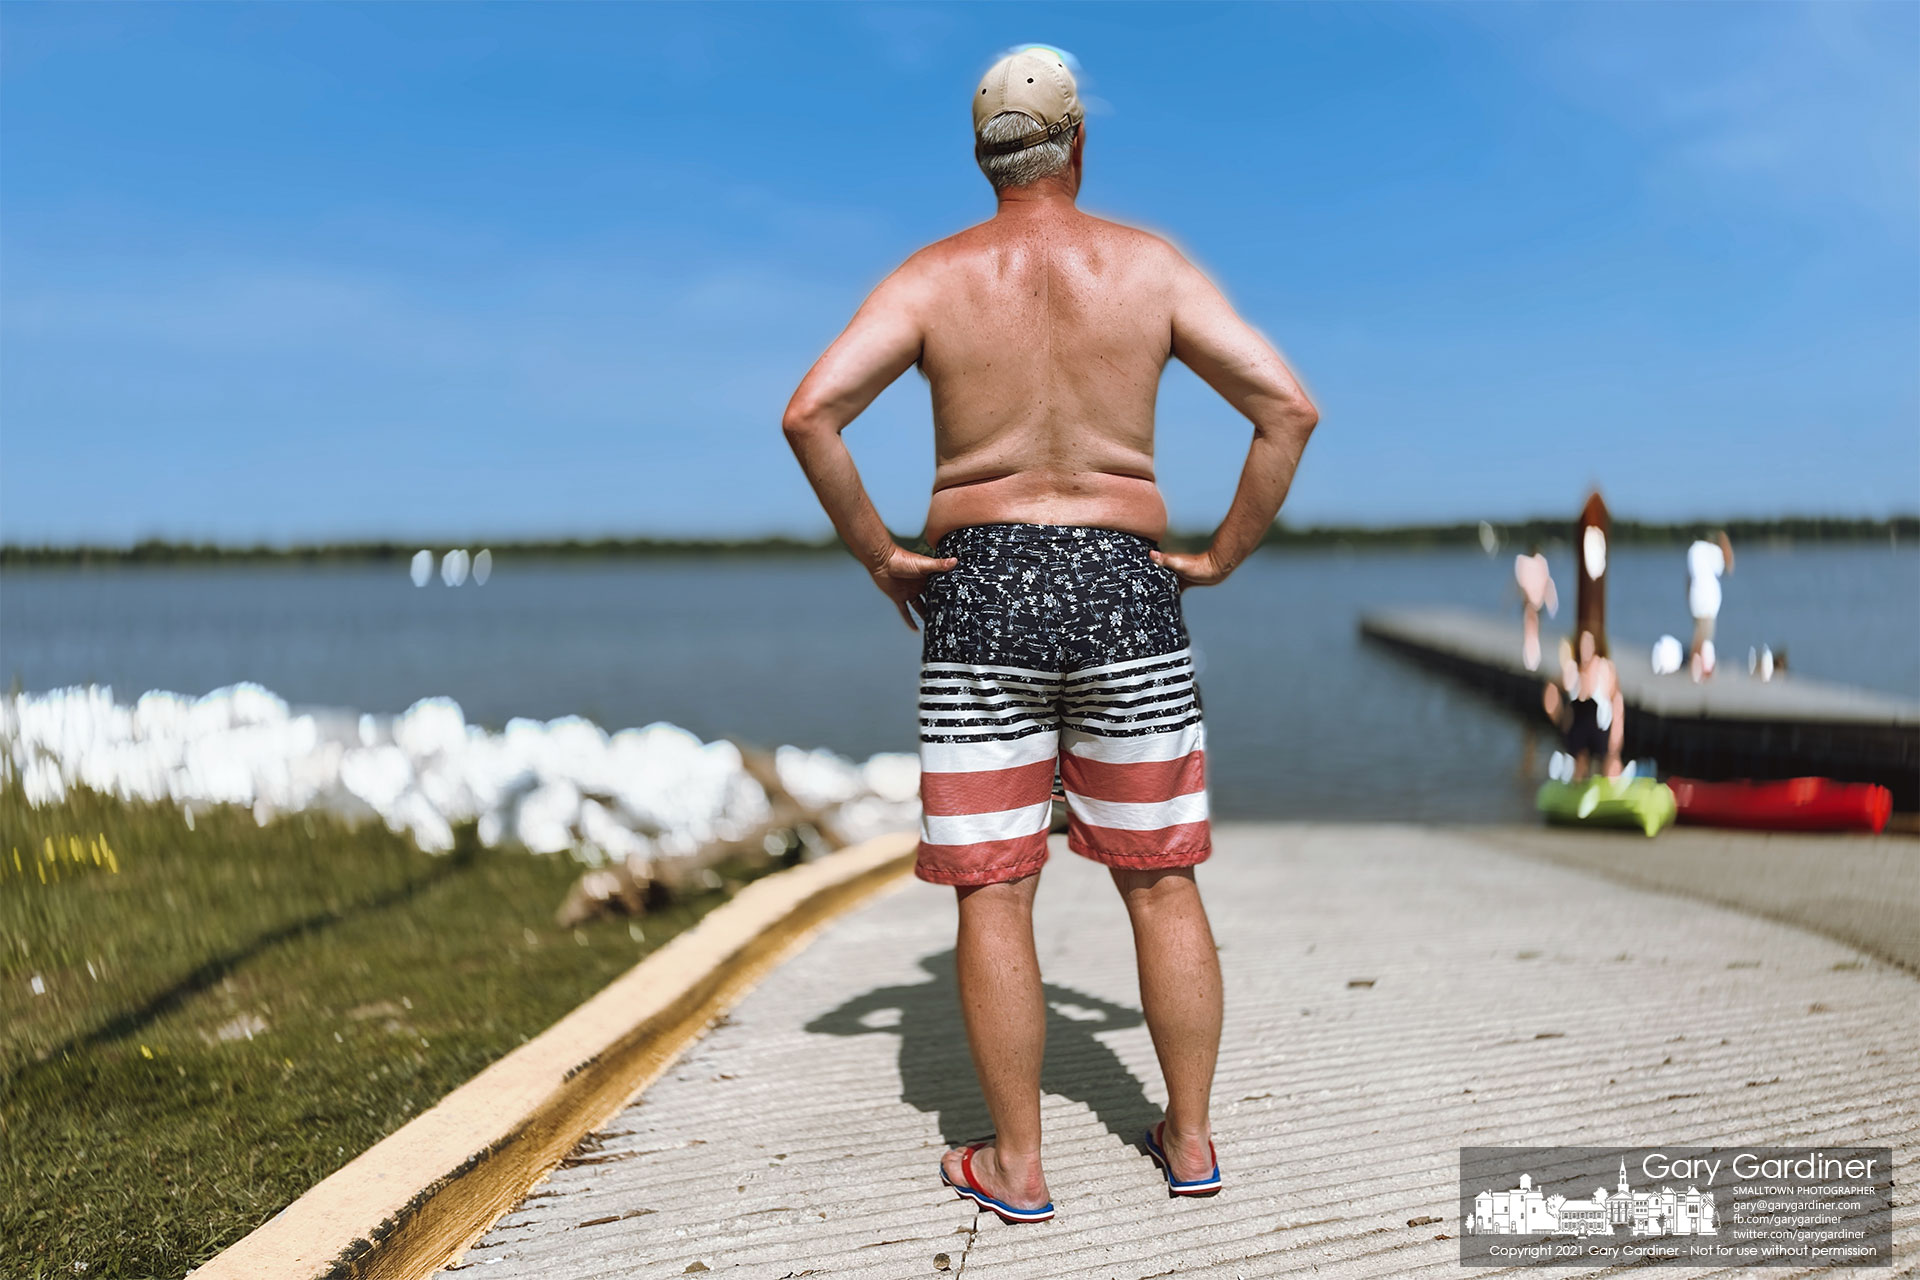 A kayaker waits at the Oxbow boat ramp for his fellow sailors to return to shore completing an afternoon paddling Hoover Reservoir on July 4th. My Final Photo for July 4, 2021.